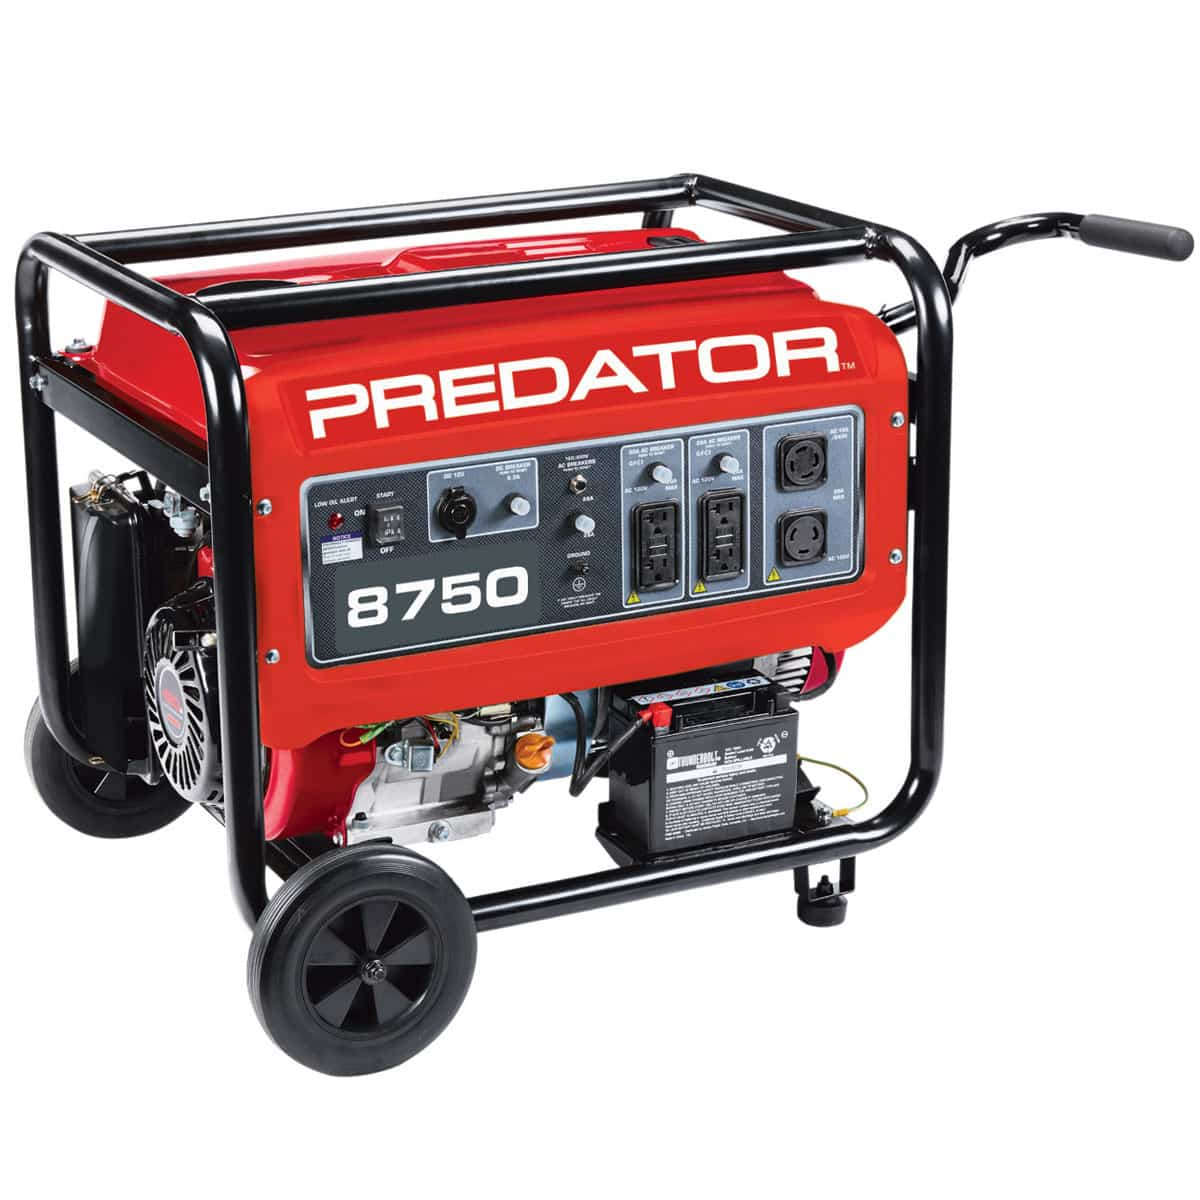 Predator 8750 Generator Review